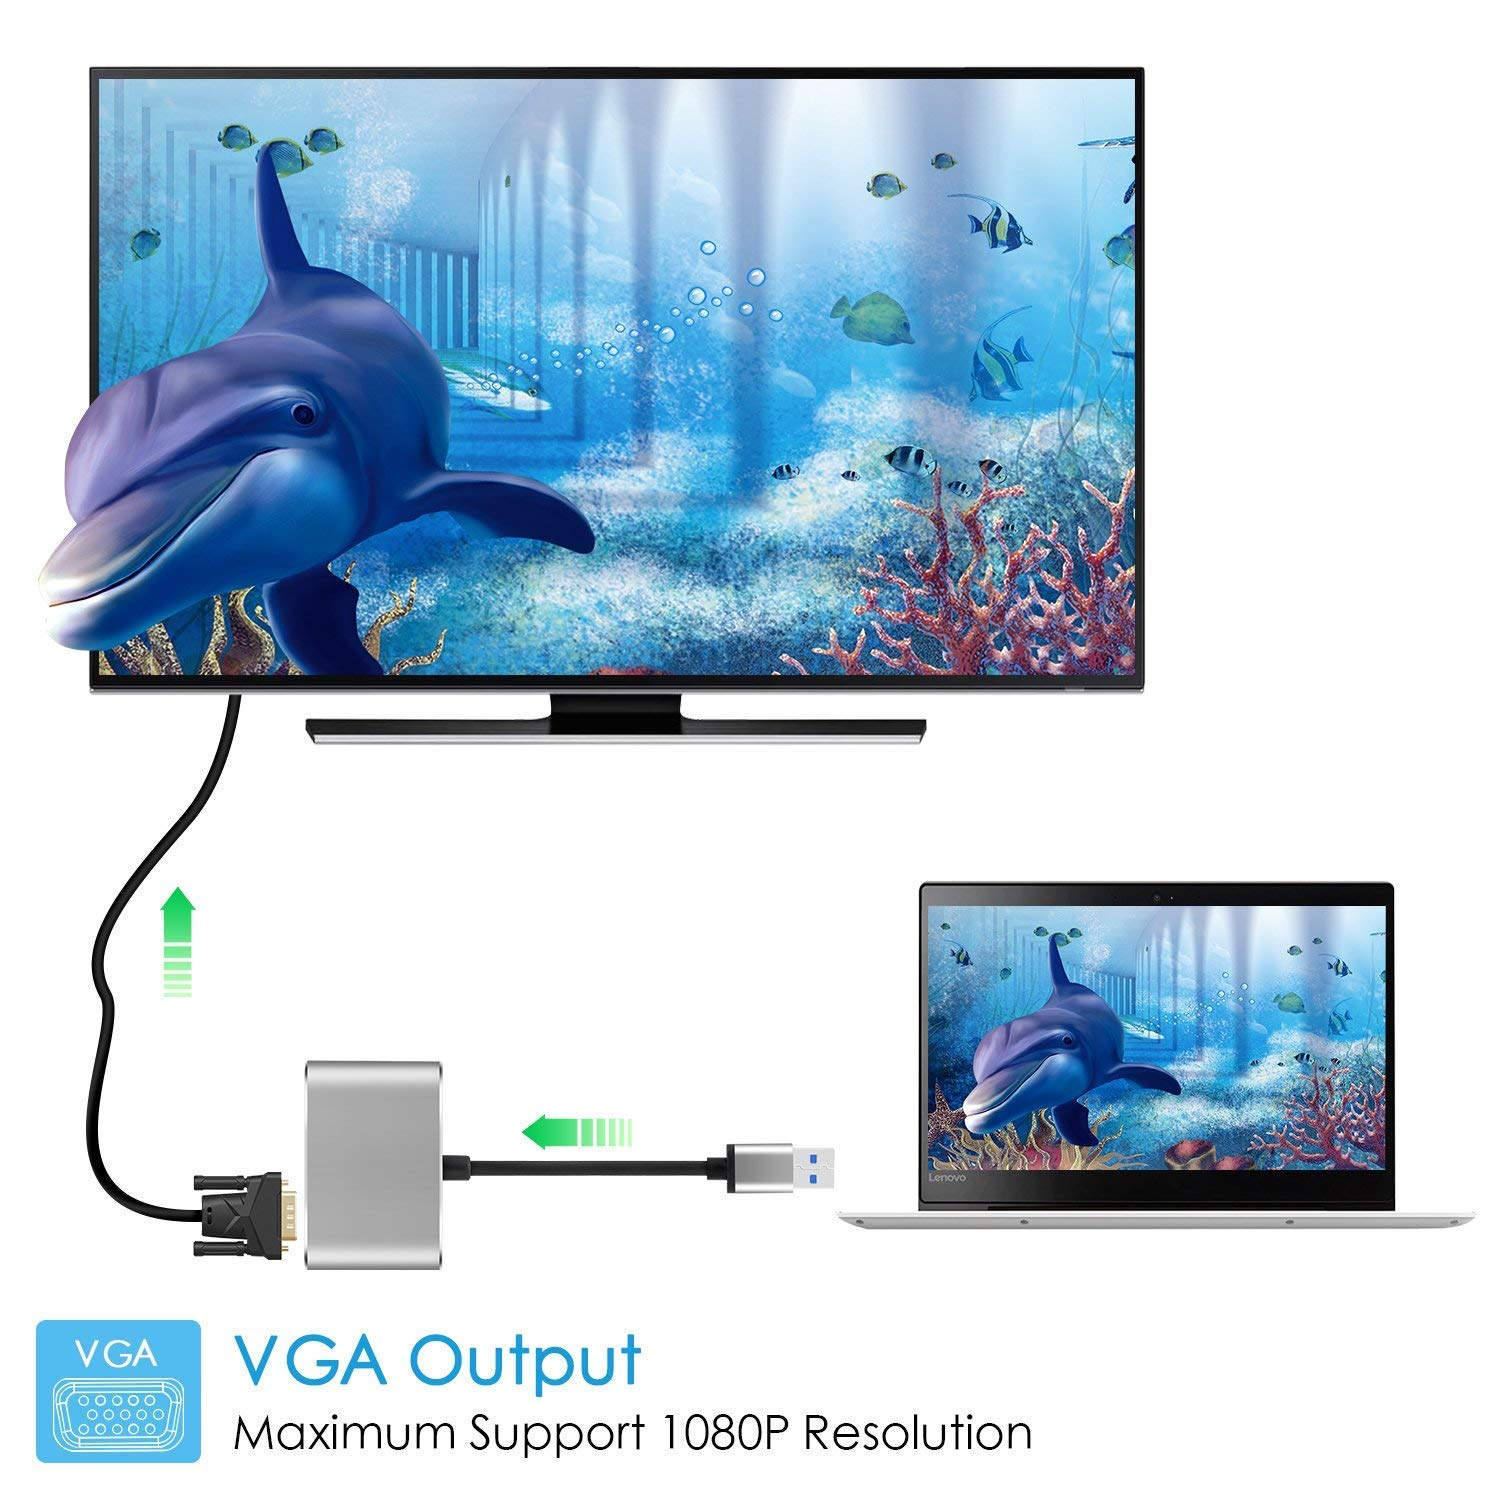 USB 3.0 to HDMI VGA Adapter, 2 in 1 USB to HDMI Adaptor 1080P for Windows7/8/10